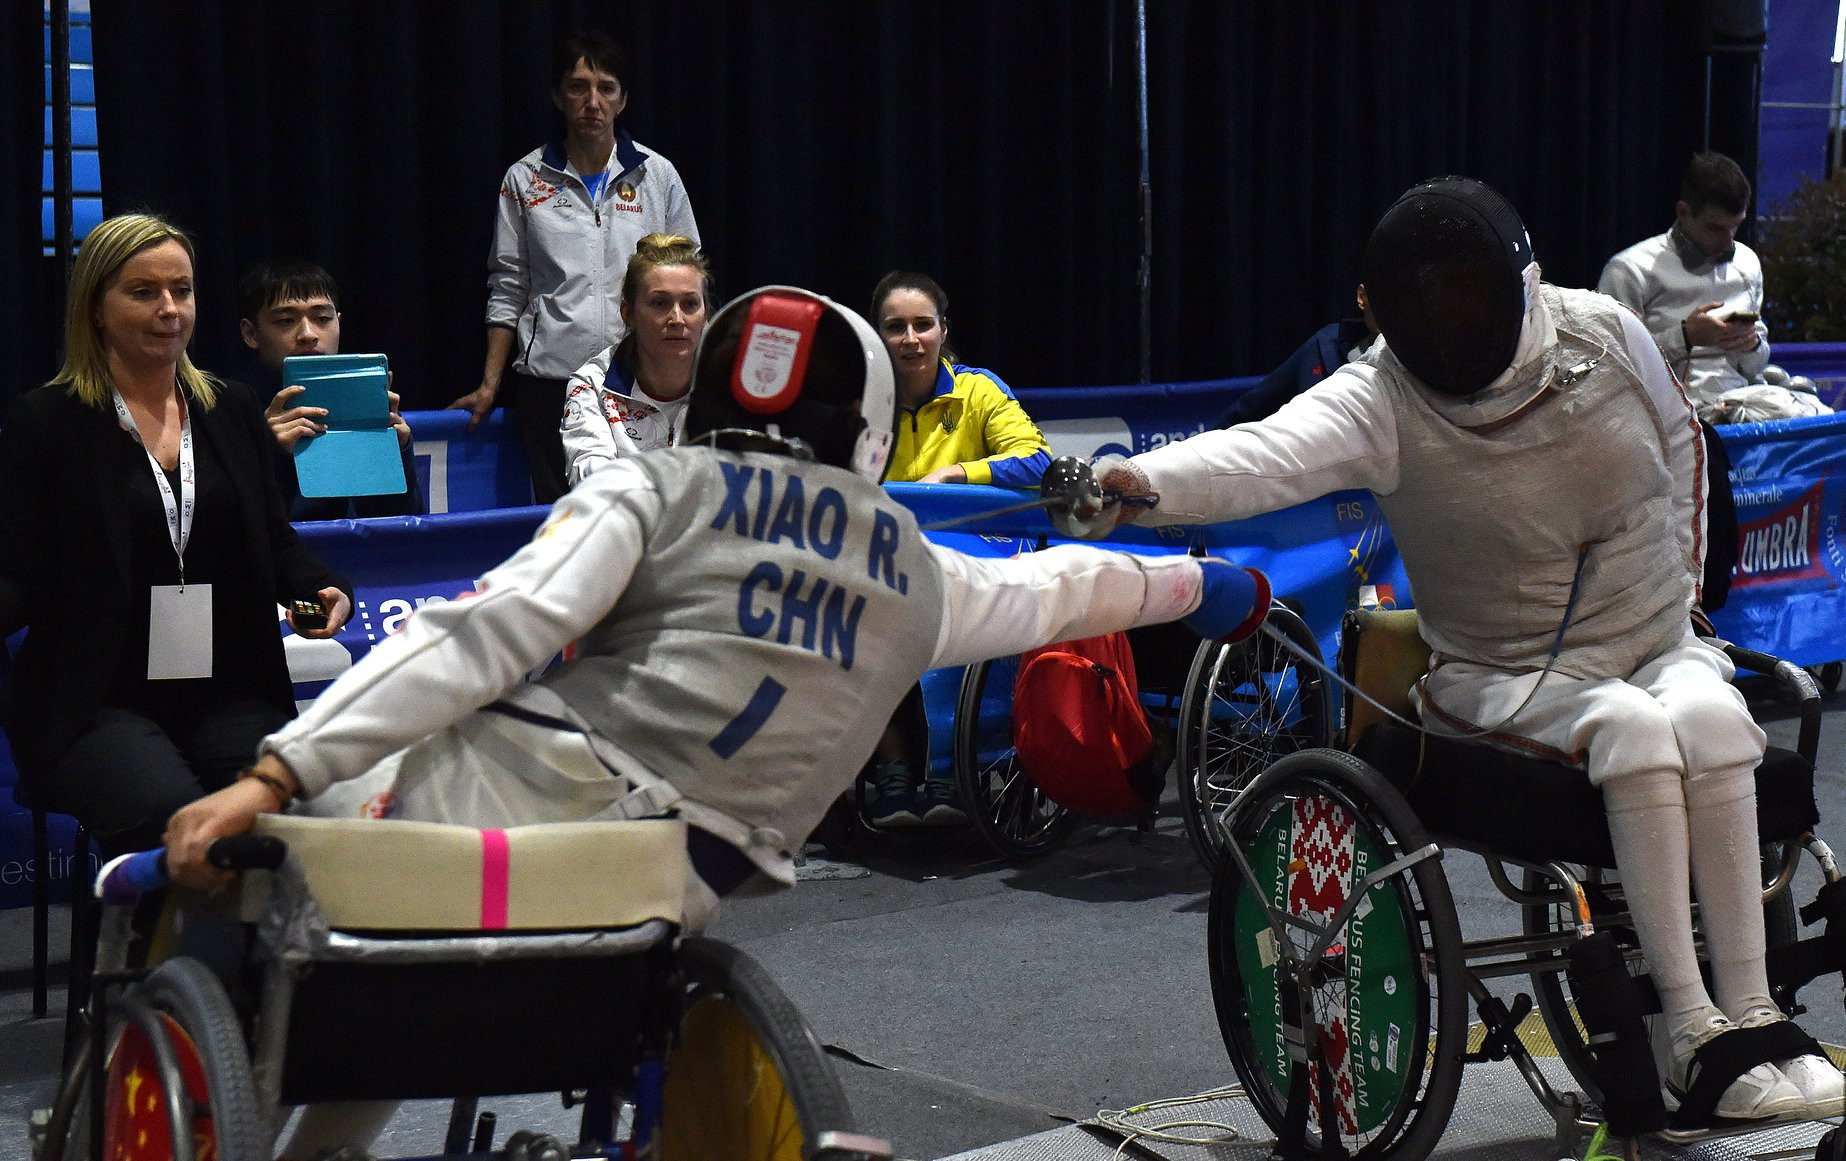 China won the men's foil team event at the IWAS Wheelchair Fencing World Cup in Pisa ©Facebook